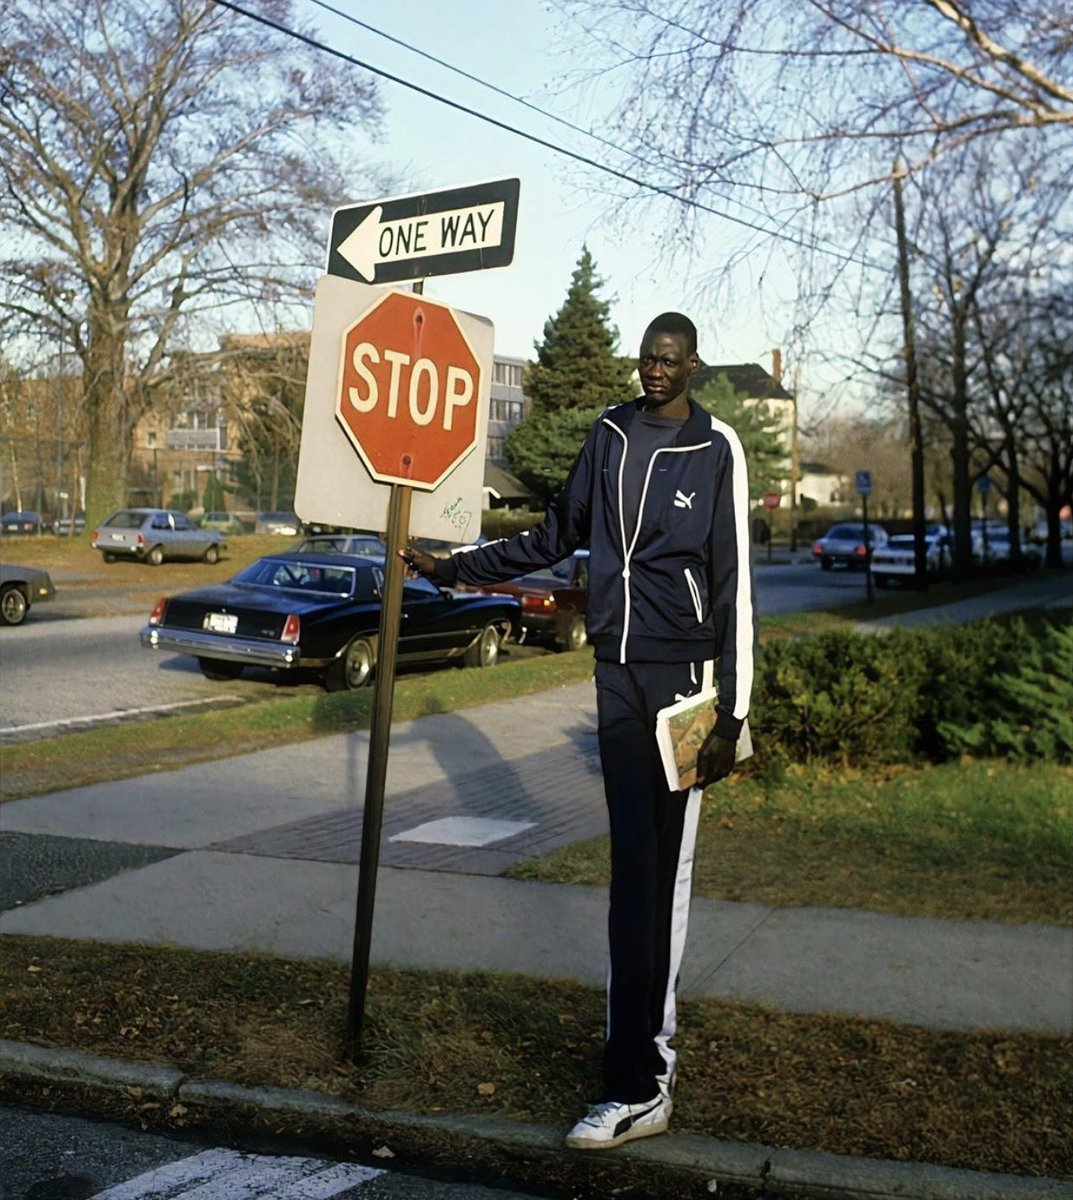 Manute Bol standing next to a stop sign in 1984. 📸 https://t.co/326HoR1jEw